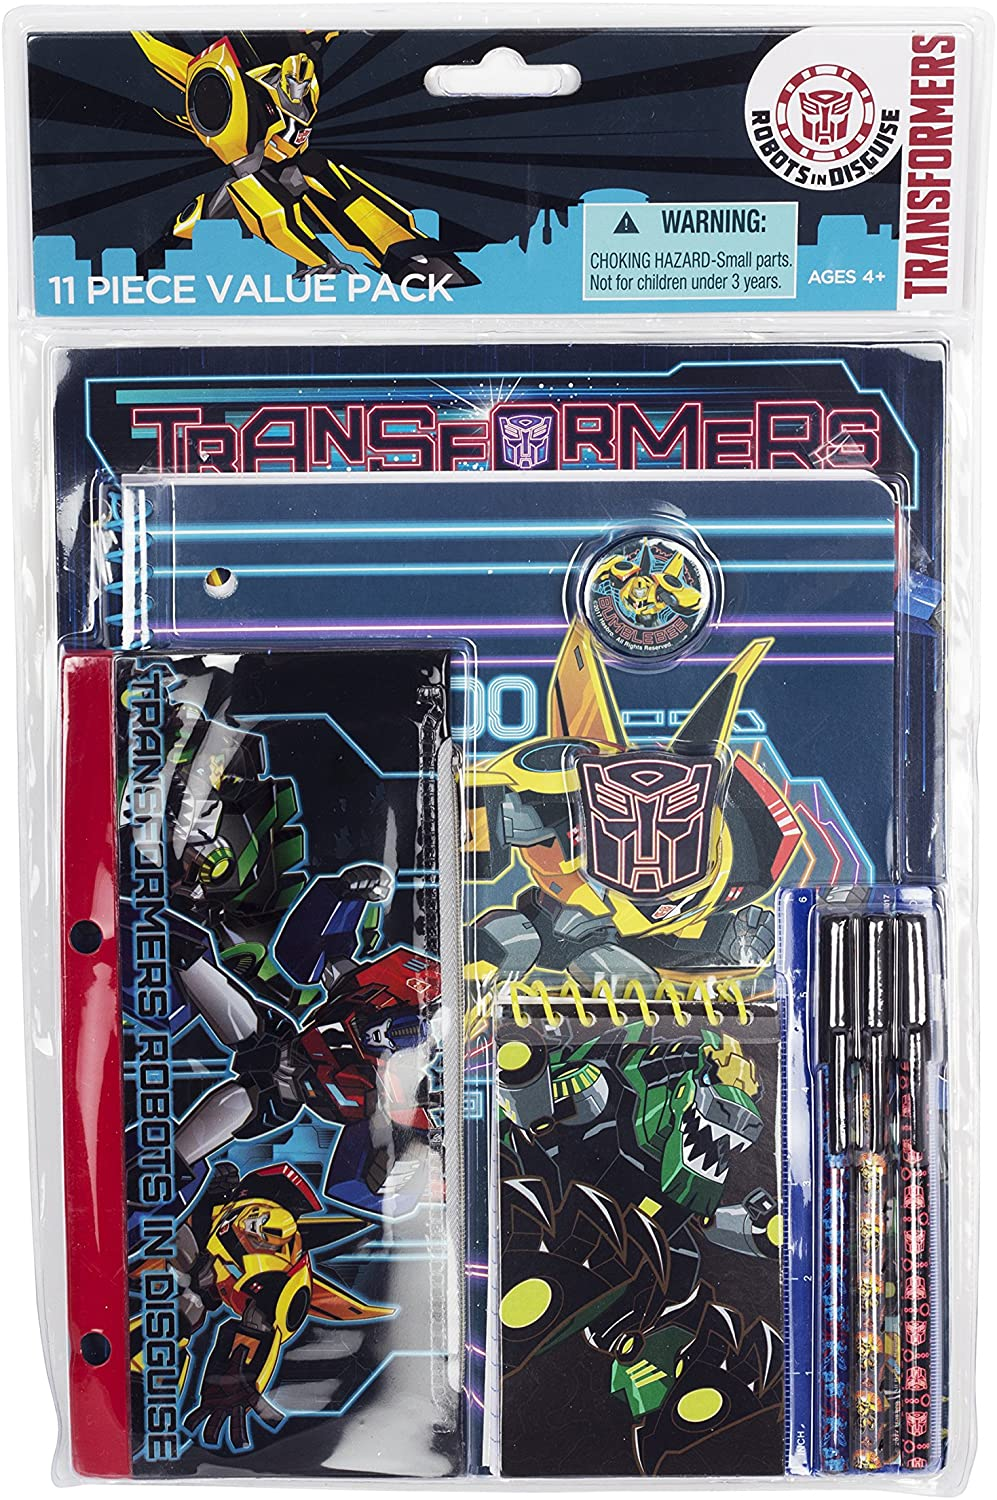 FAB Starpoint Transformers 11 Piece Stationery Value Set for School